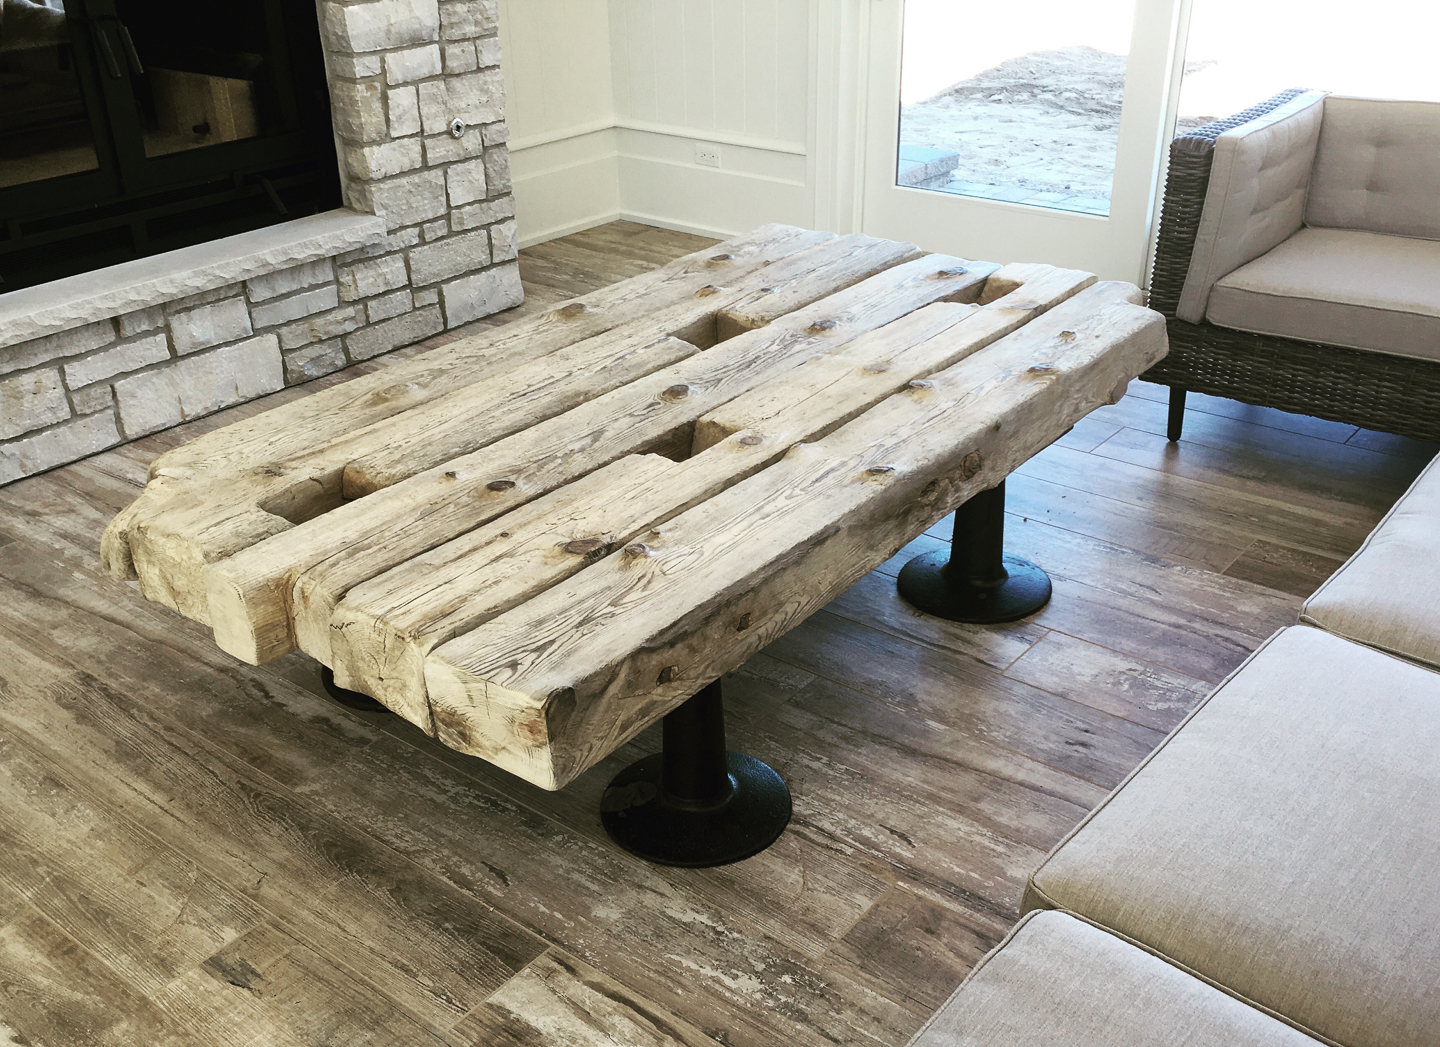 Coffee Table Made Of Reclaimed Wood From 100 Year Old Lake Michigan Shipwreck With Vintage Industrial